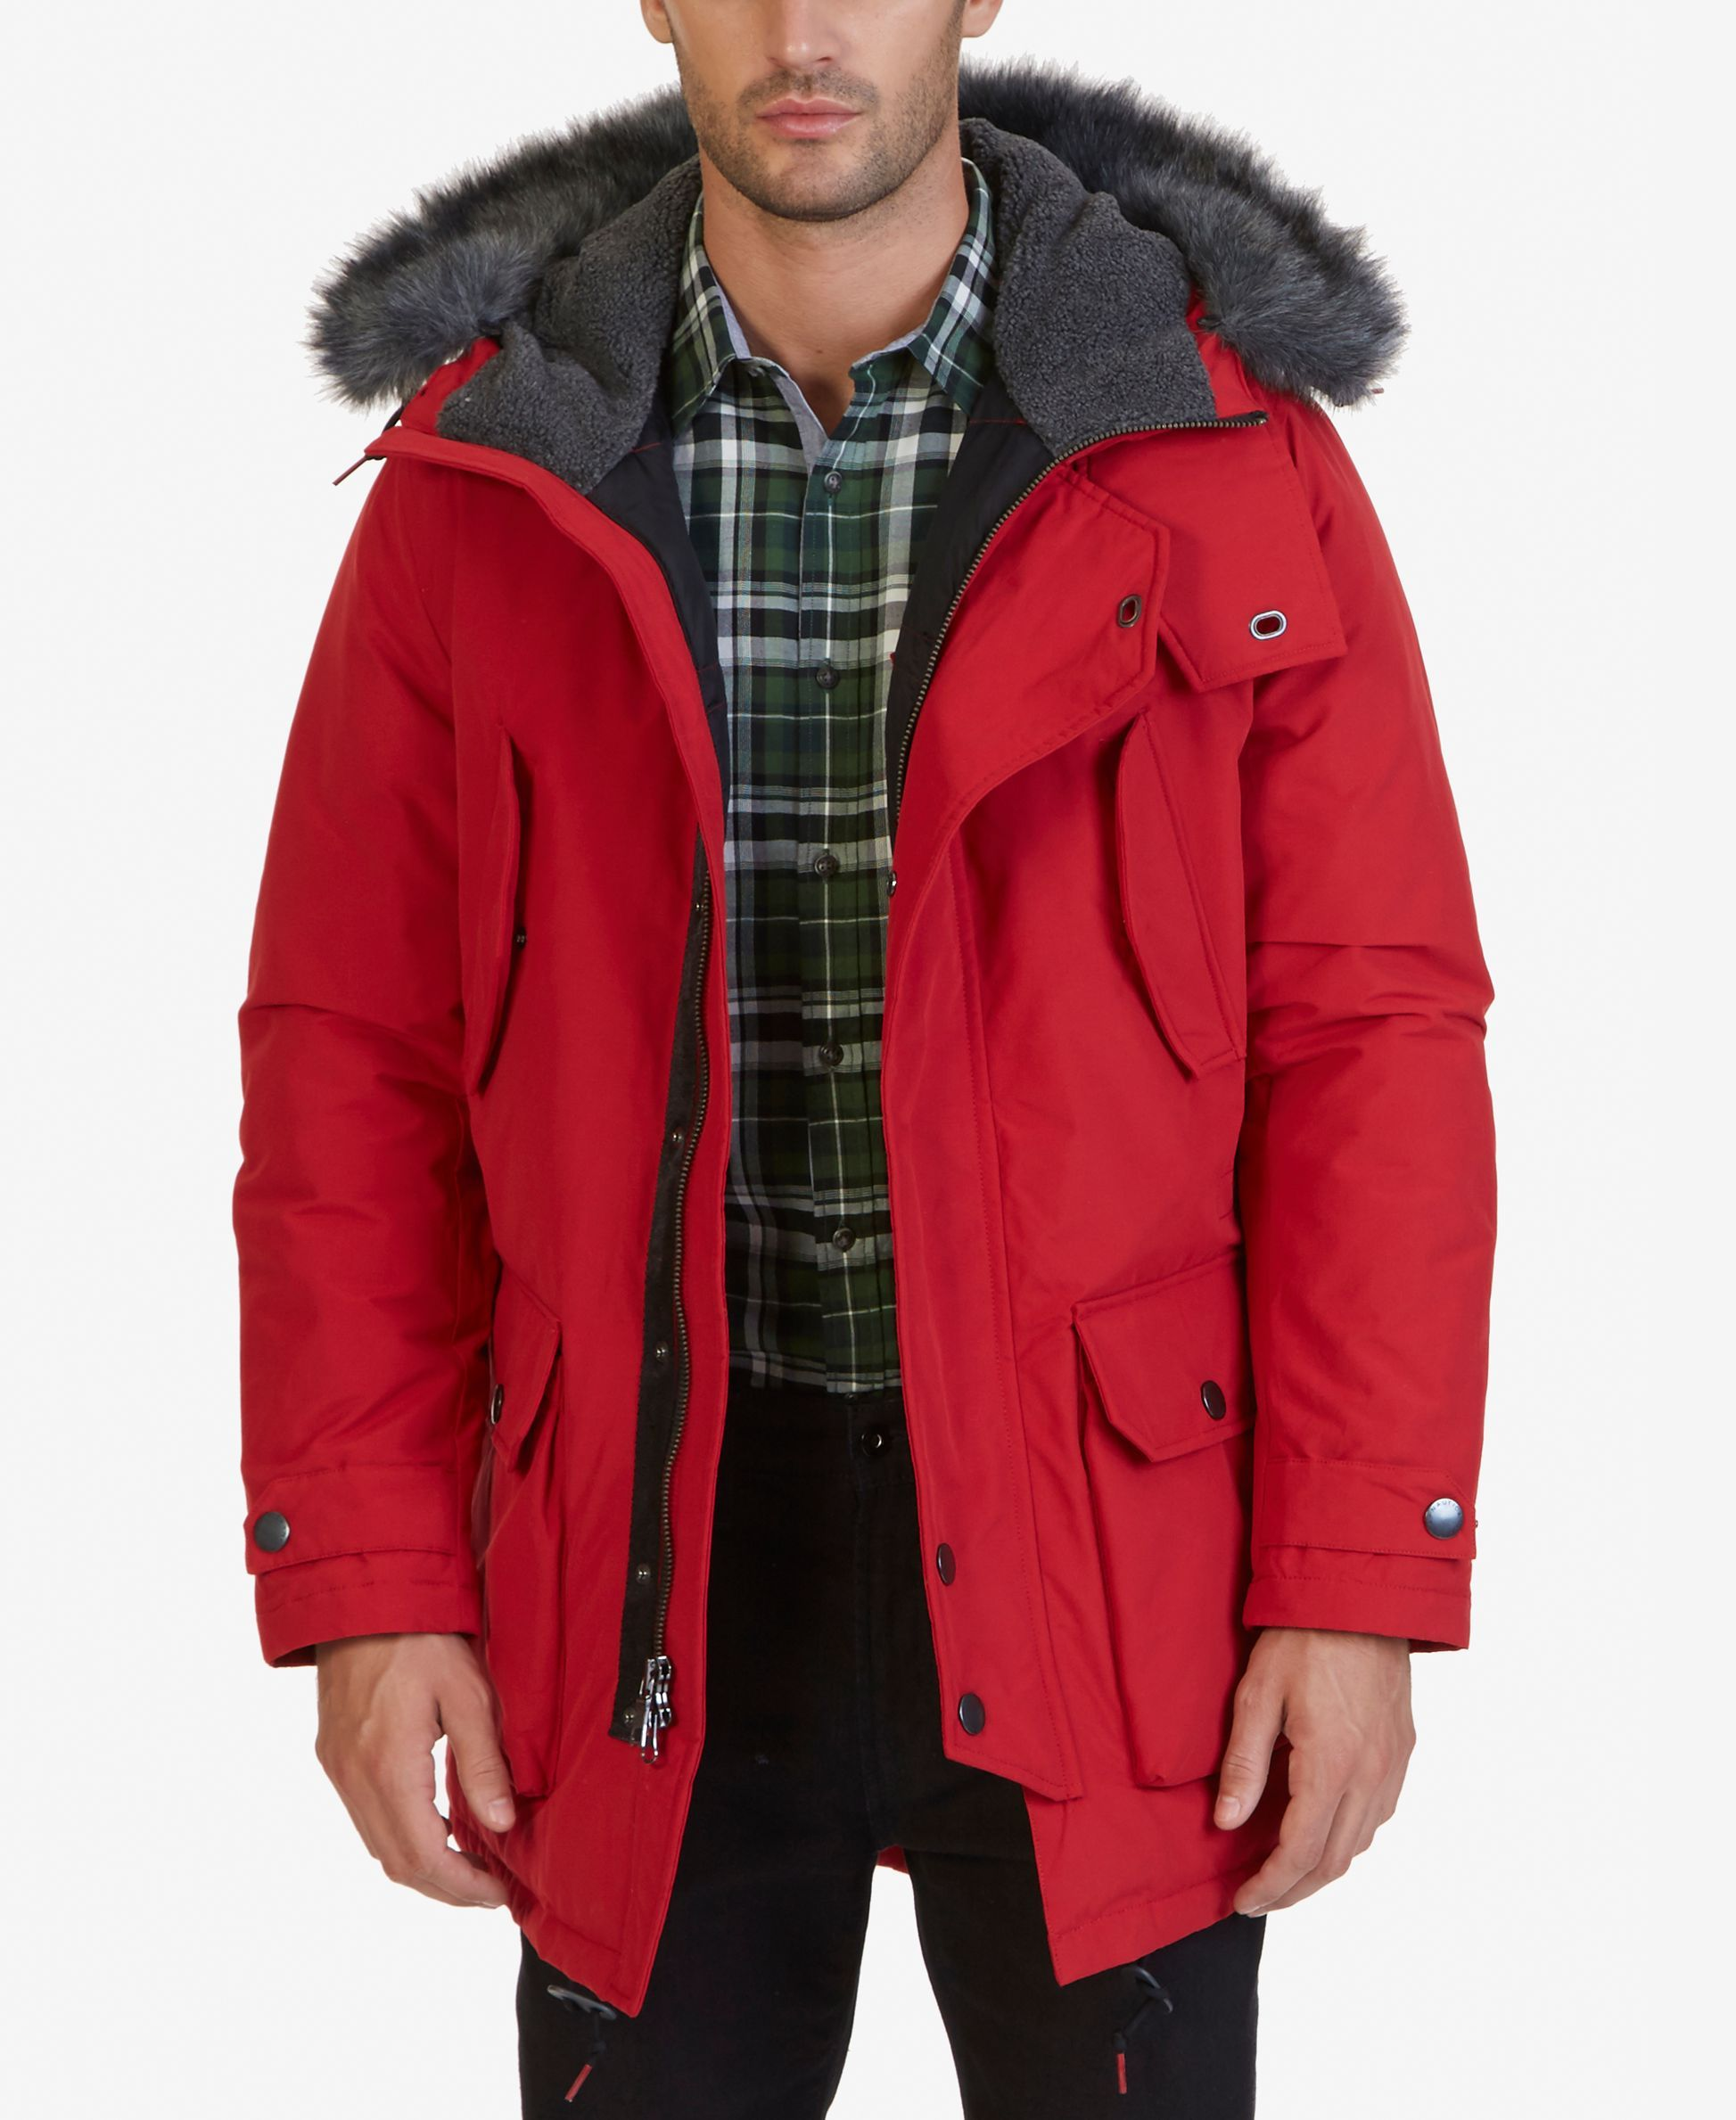 Nautica Men S Faux Fur Quilted Parka Hooded Parka Jacket Quilted Parka Parka Jacket [ 2378 x 1947 Pixel ]